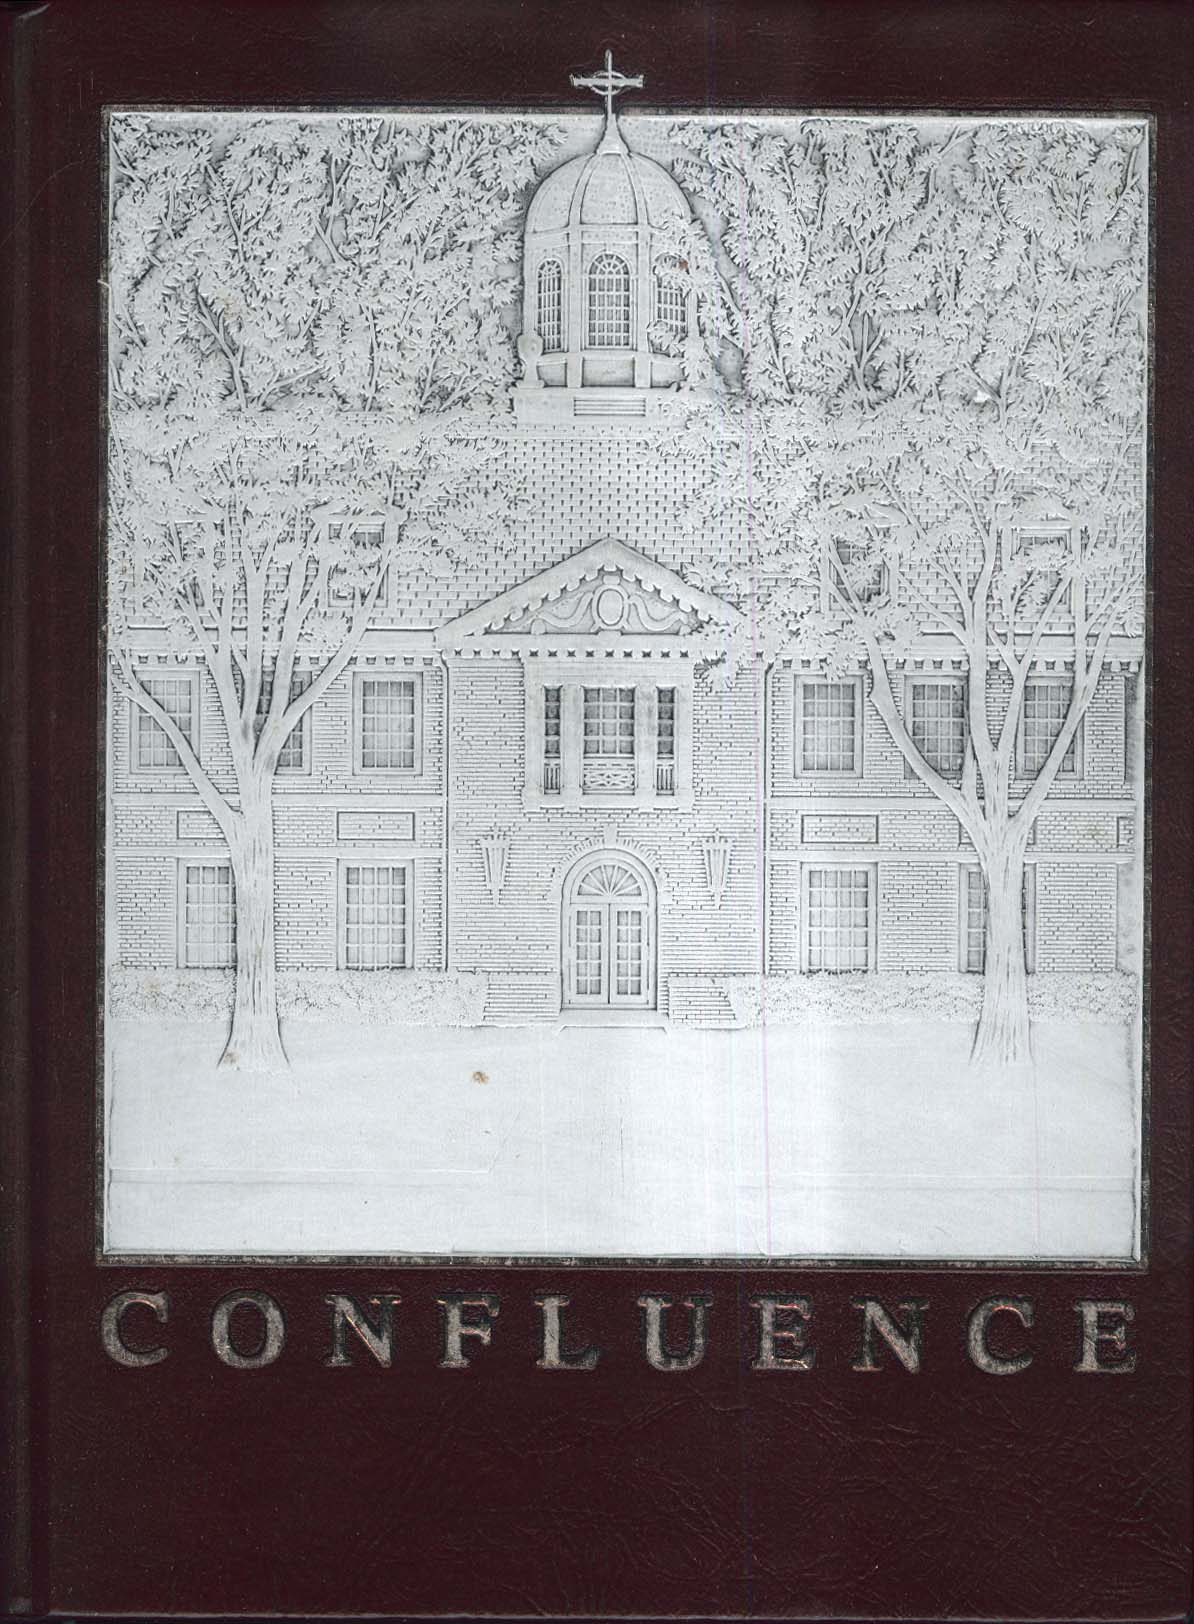 Image for Loomis Chaffee School Confluence 1996 Yearbook